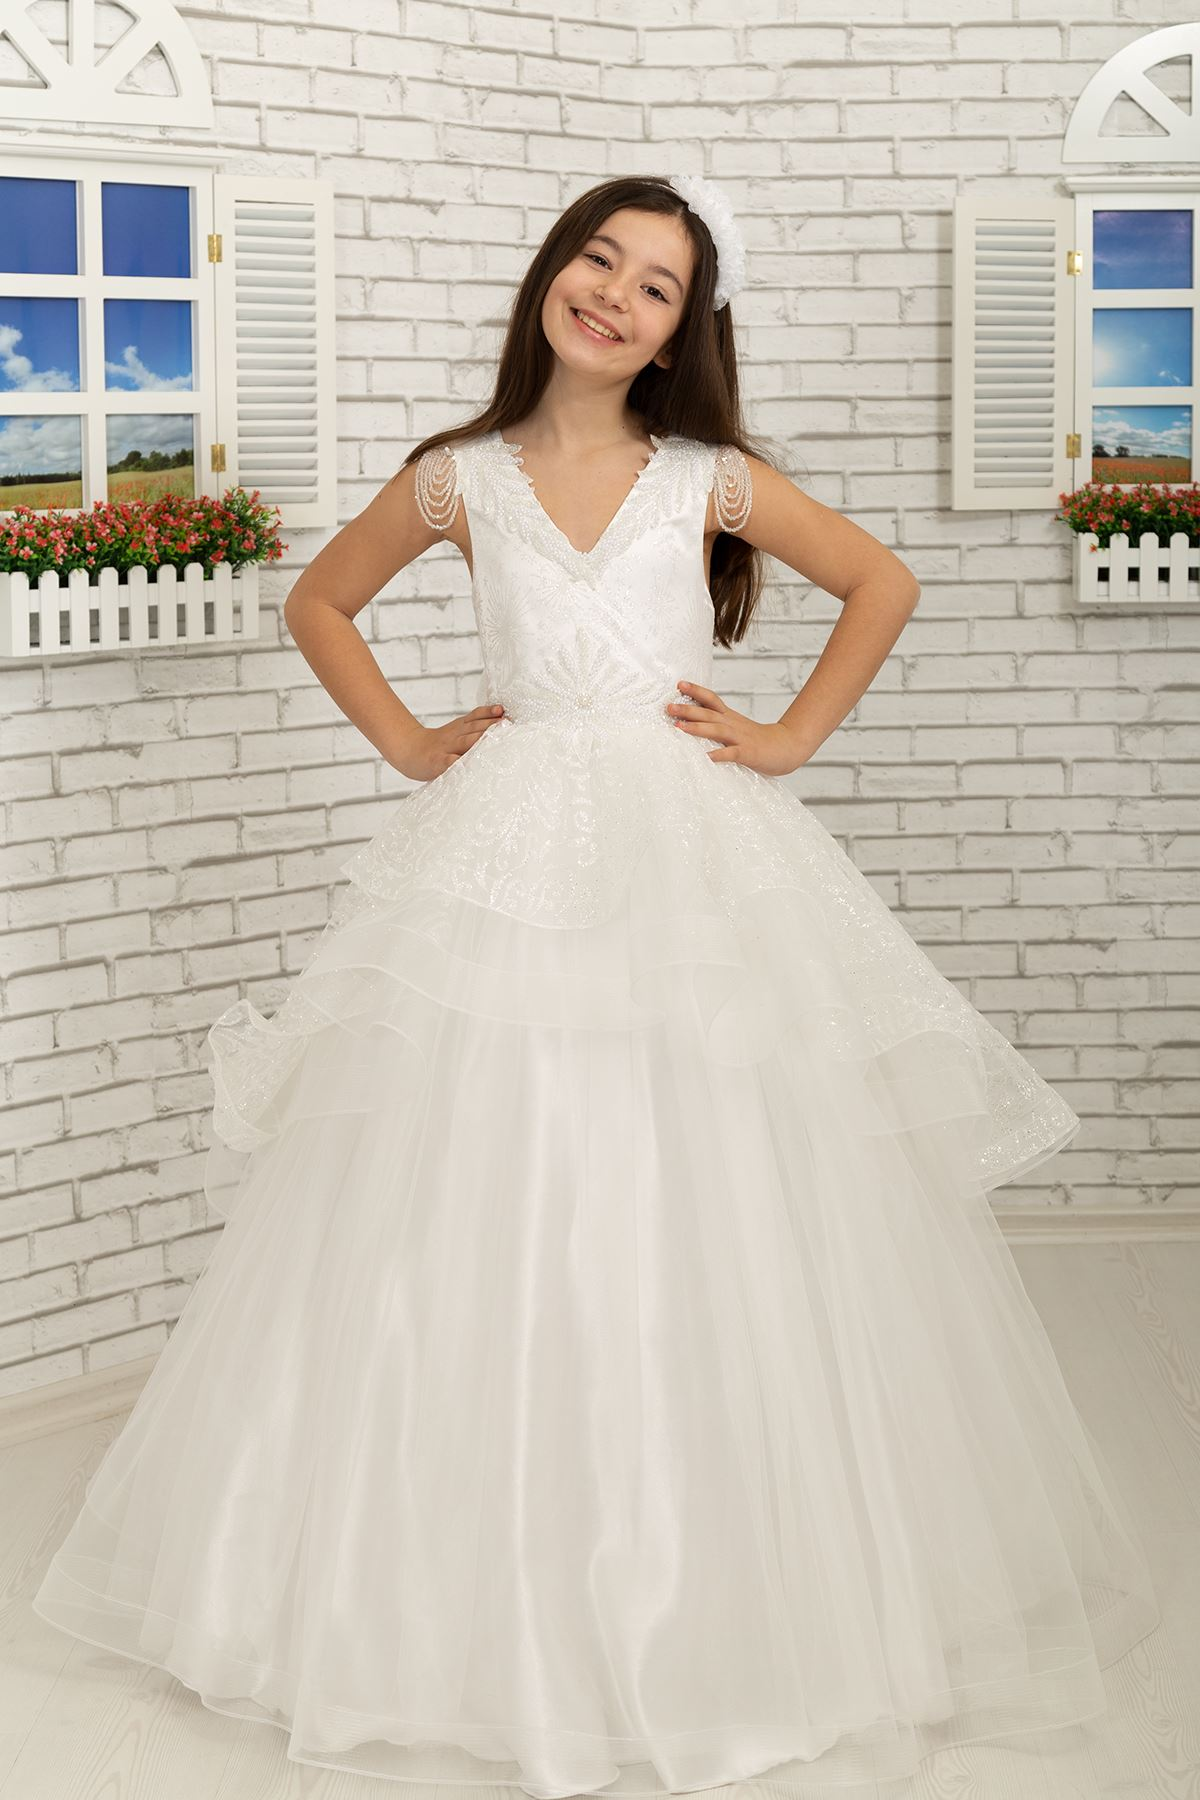 Fluffy Girl's Evening Dress 627 Cream, with dangling beads, embroidered on the shoulder, skirt detail